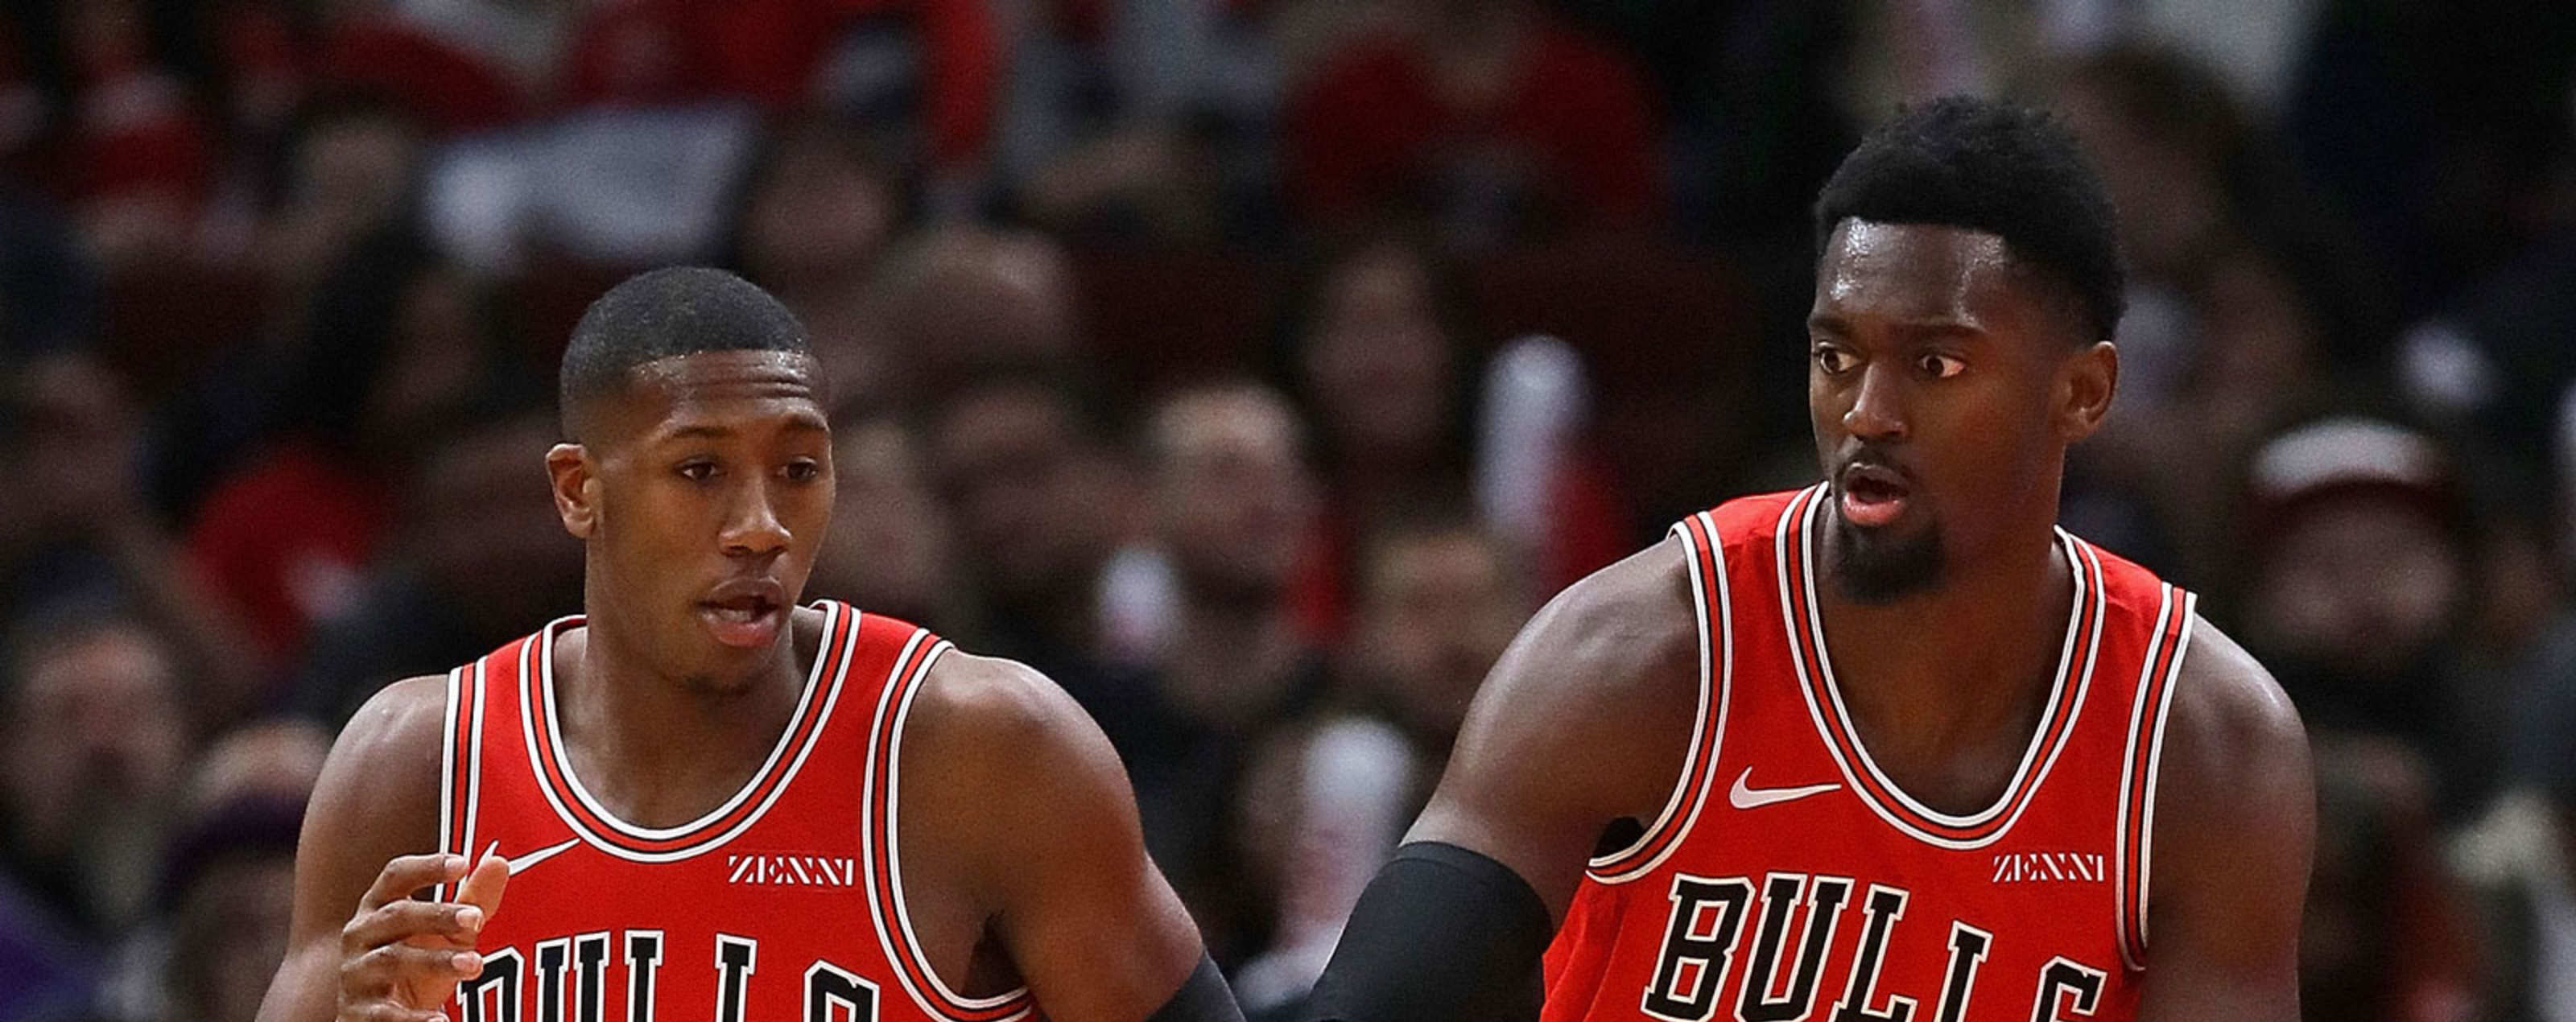 Kris Dunn #32 and Bobby Portis #5 of the Chicago Bulls return to the game against the Sacramento Kings after being injured at the United Center on December 10, 2018 in Chicago, Illinois.